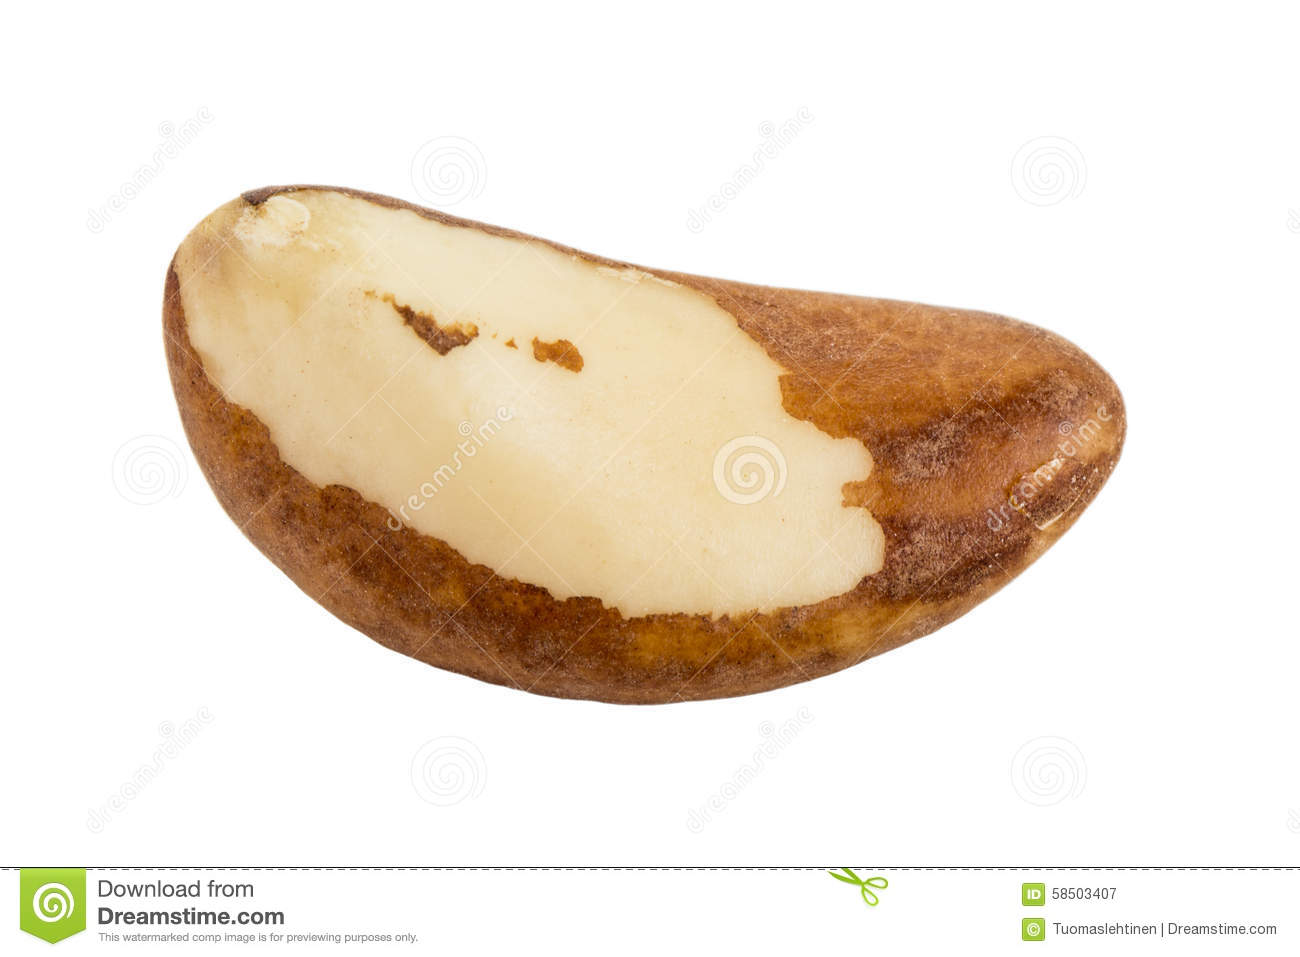 One Brazil Nut Stock Photos, Images, & Pictures.